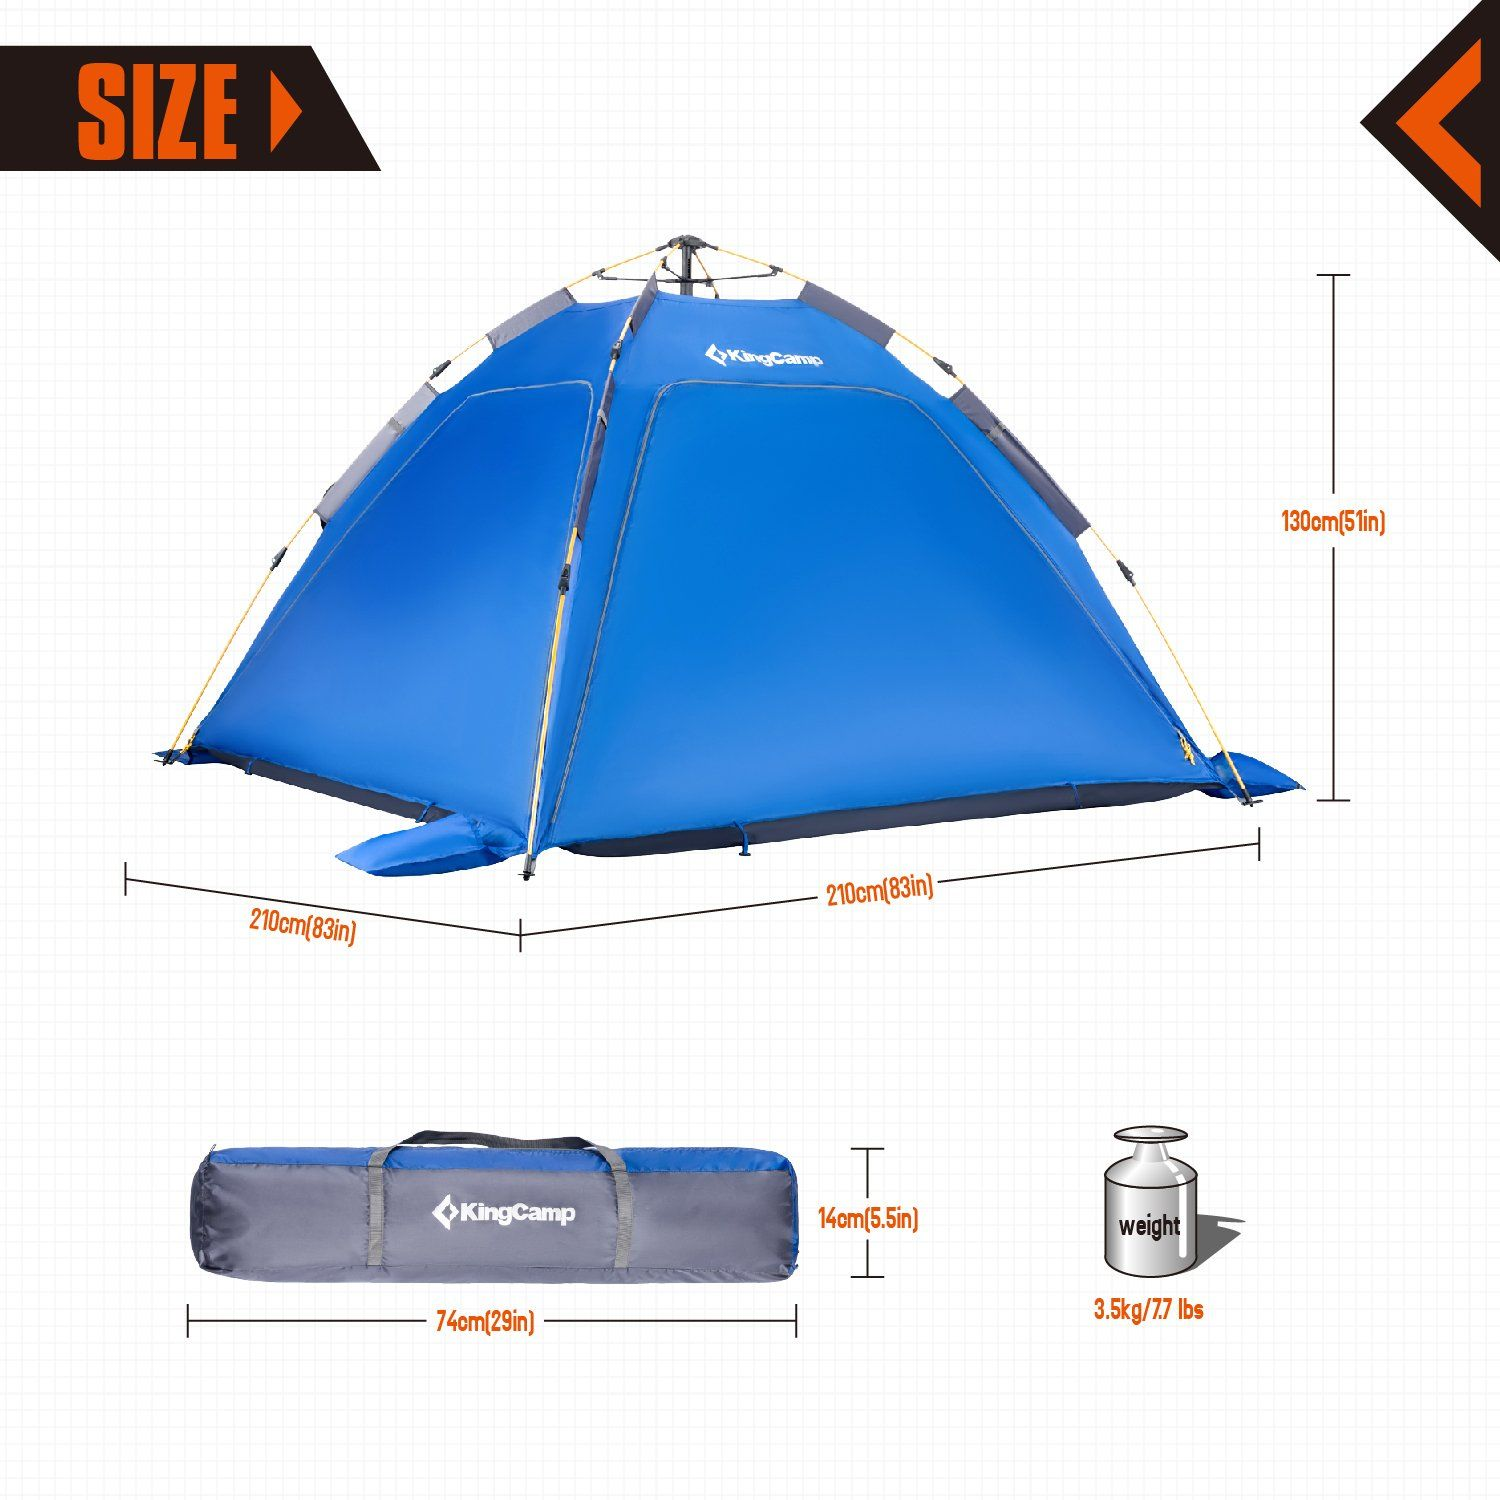 Kingcamp Quick Up 34 Person Breathable Cabana Beach Sun Shelter Tent With Detachable Three Side Walls Blue For More Infor Backpacking Tent Tent Shelter Tent